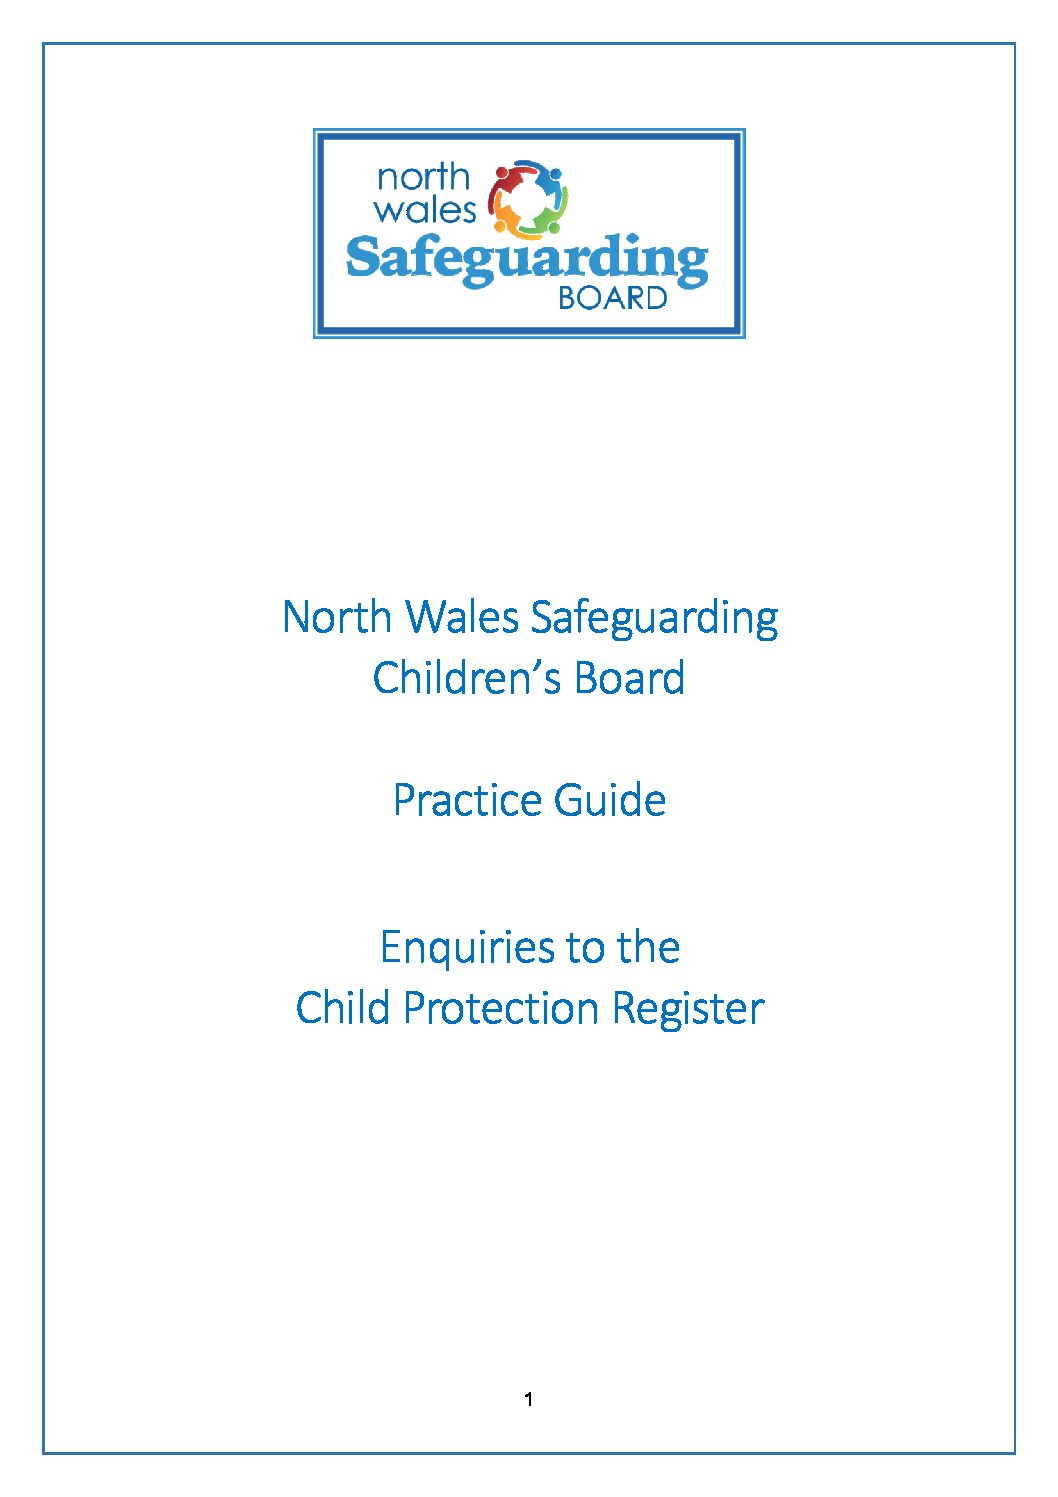 North Wales Practice Guide Enquiries to the Child Protection Register